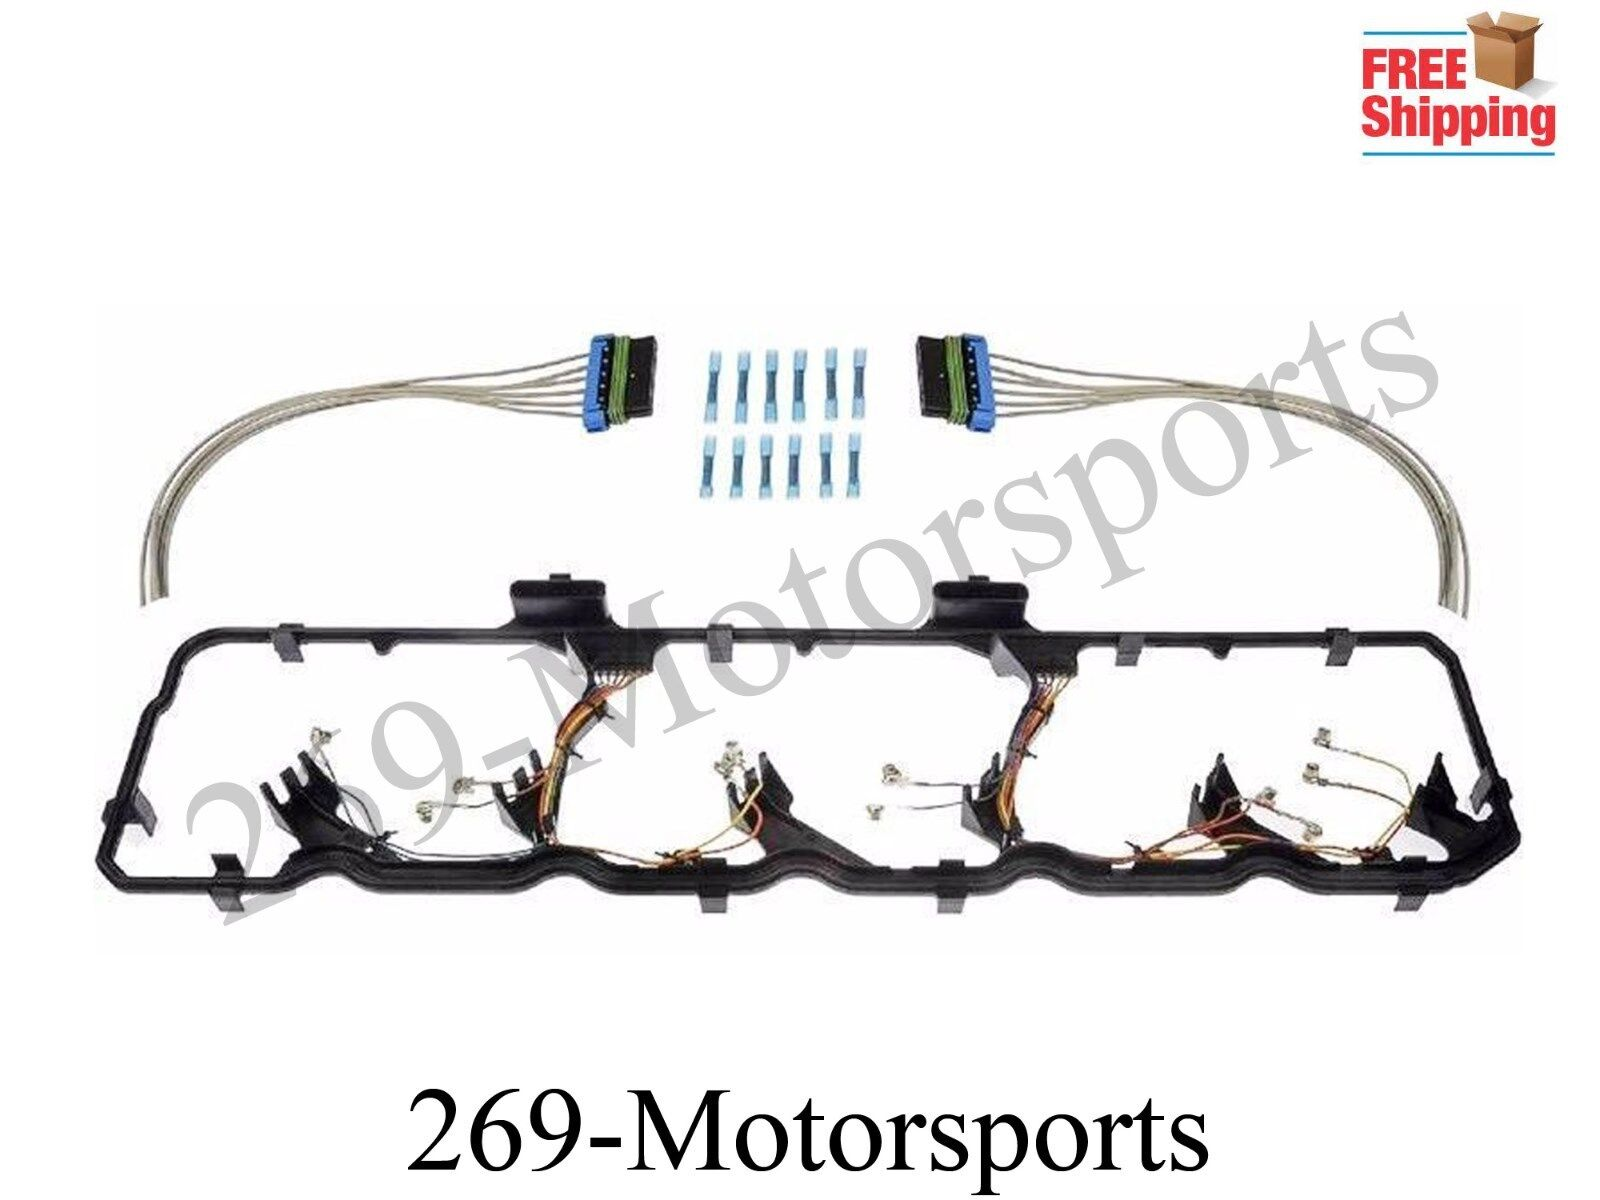 Valve Cover Gasket Wire Harness Fits 59l 67l 06 15 Dodge Cummins Turbo 1 Of 1only 5 Available